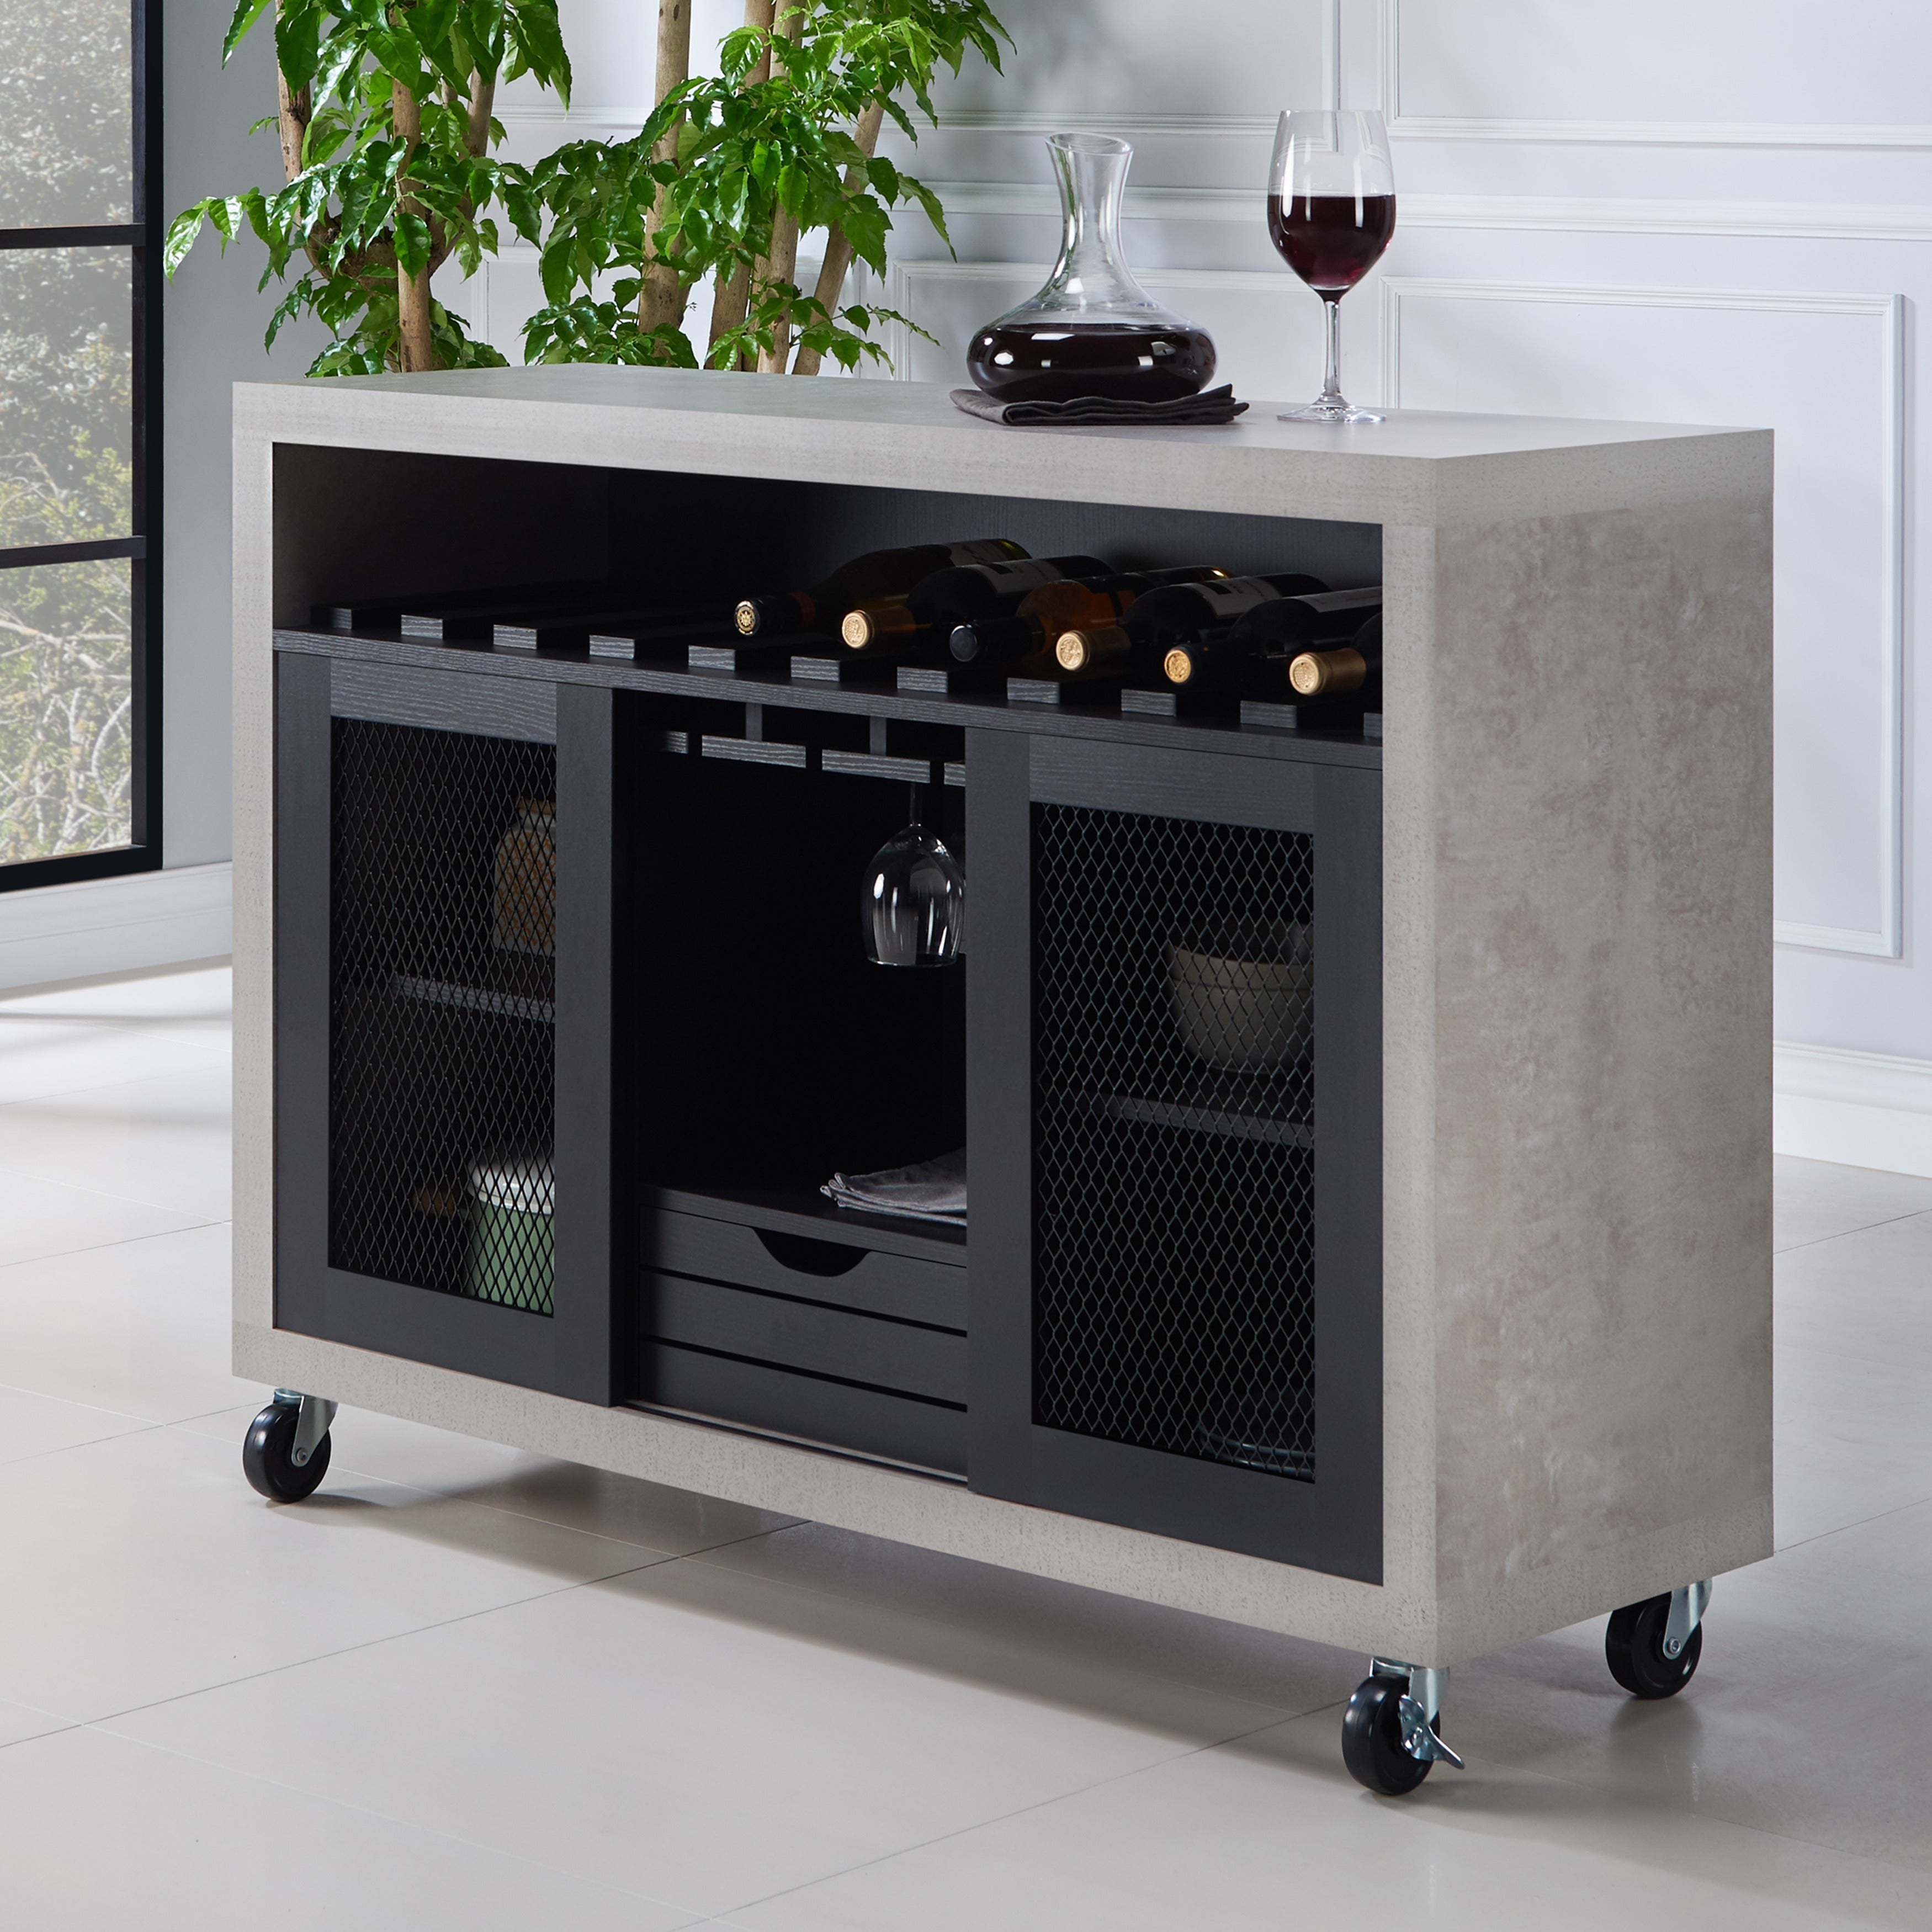 Gelenan Contemporary Rolling Buffetfoa Intended For Contemporary Buffets (View 15 of 30)